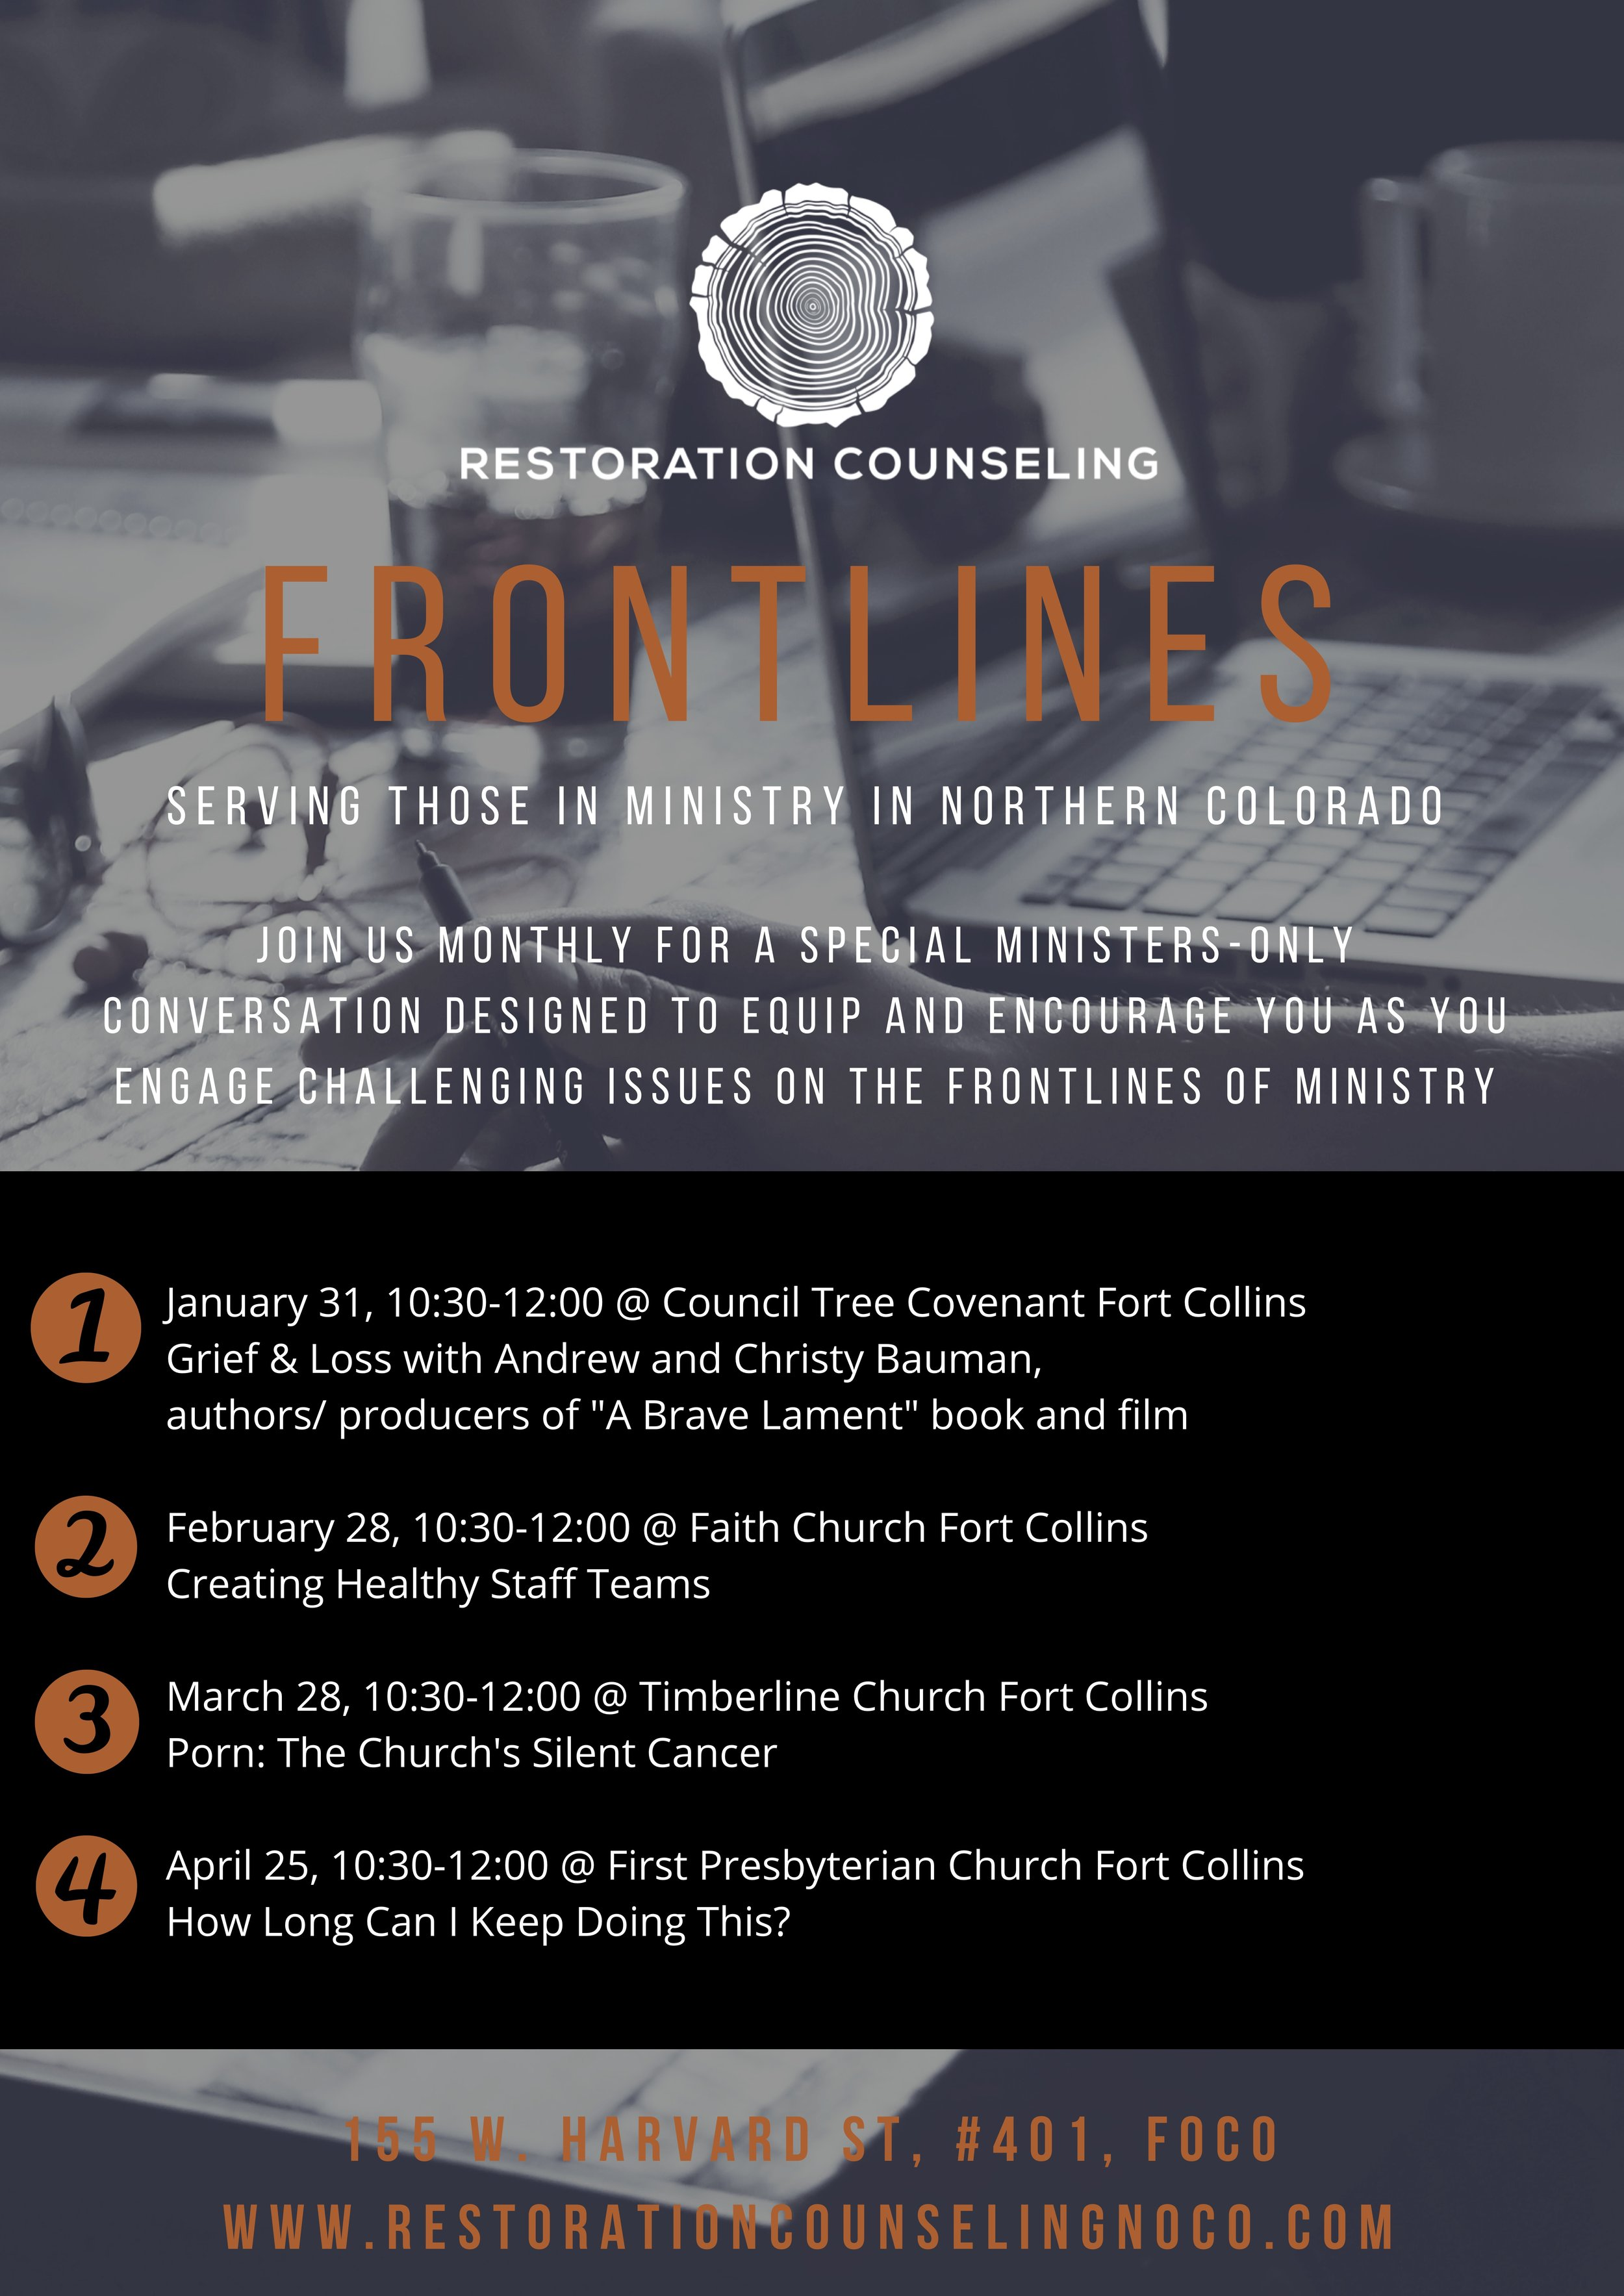 Winter '19 Frontlines  - Join us monthly for a special ministers-only conversation designed to equip and encourage you as you engage challenging issues on the frontlines of ministry.Feel free to click on the image to download the poster for your team.